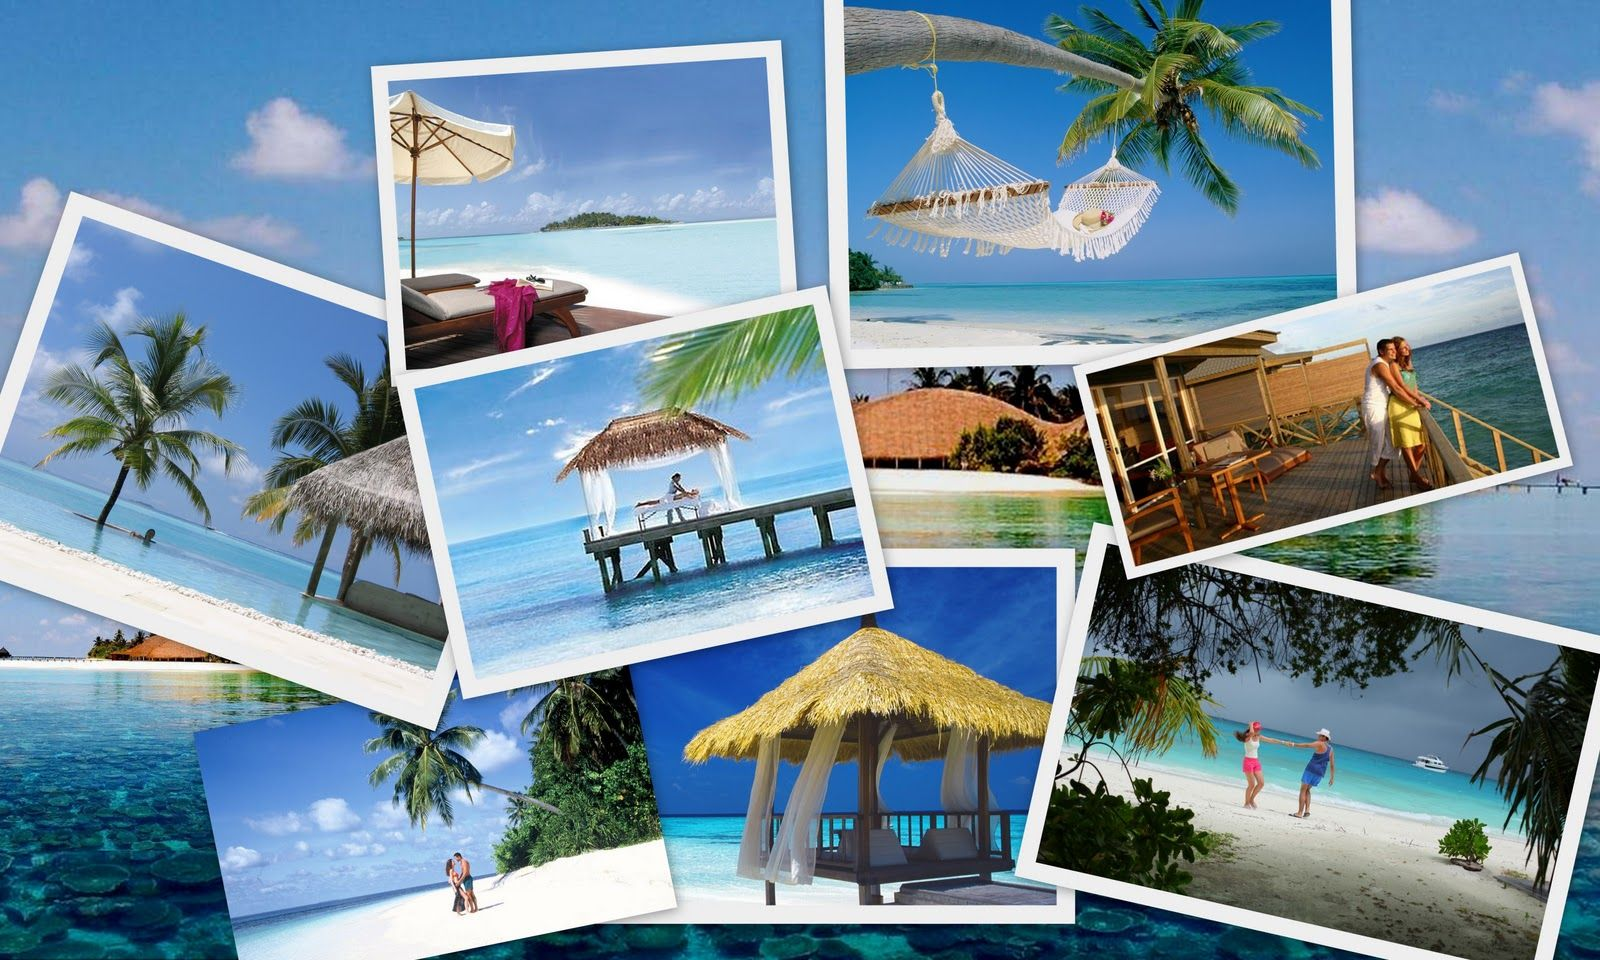 Juven Tours & Travel Inc is a Travel Agency and are